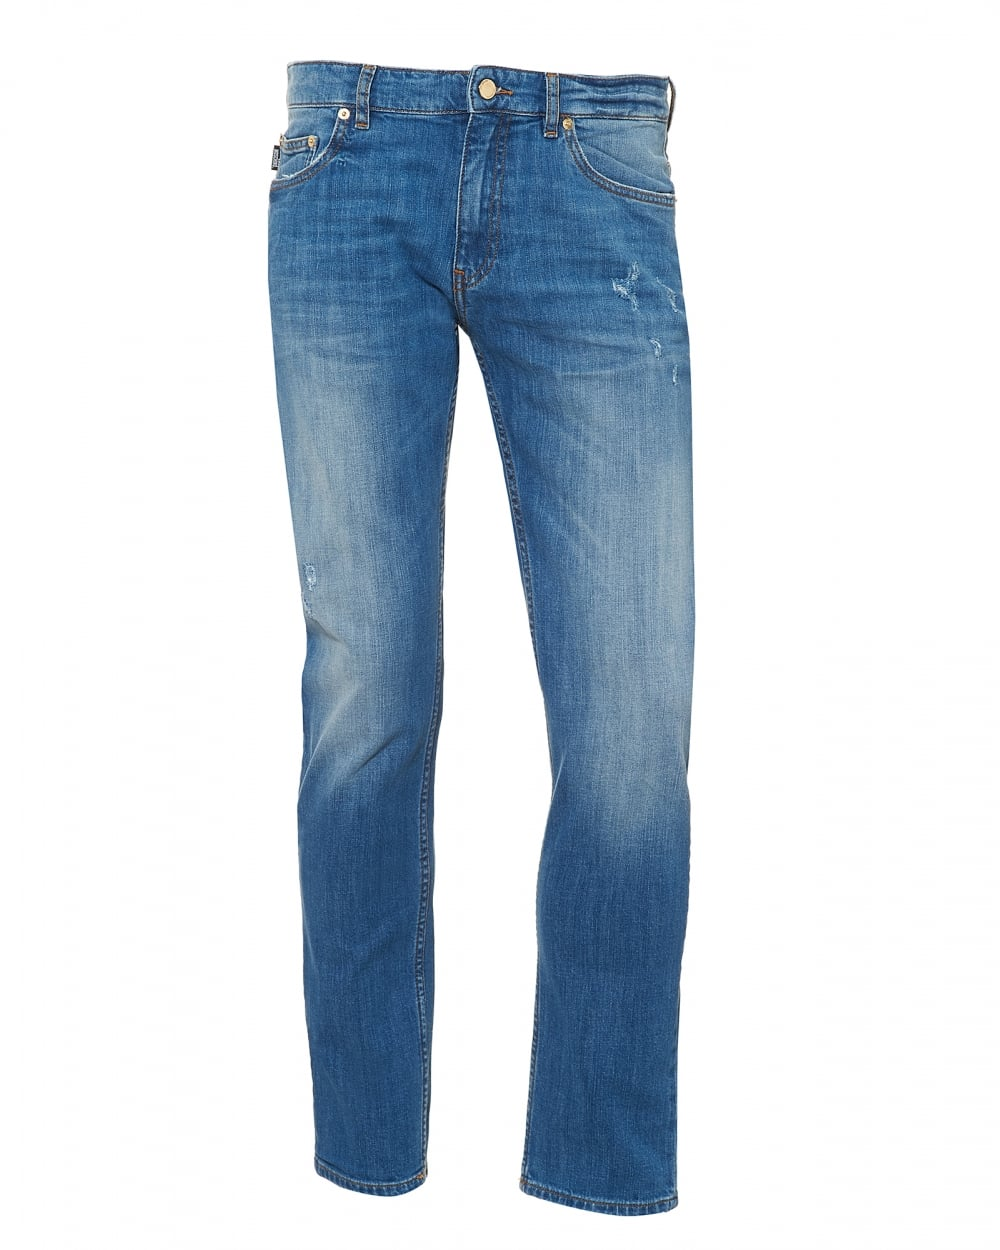 Love Moschino Mens Slim Fit Distressed Jeans Light Blue Jeans